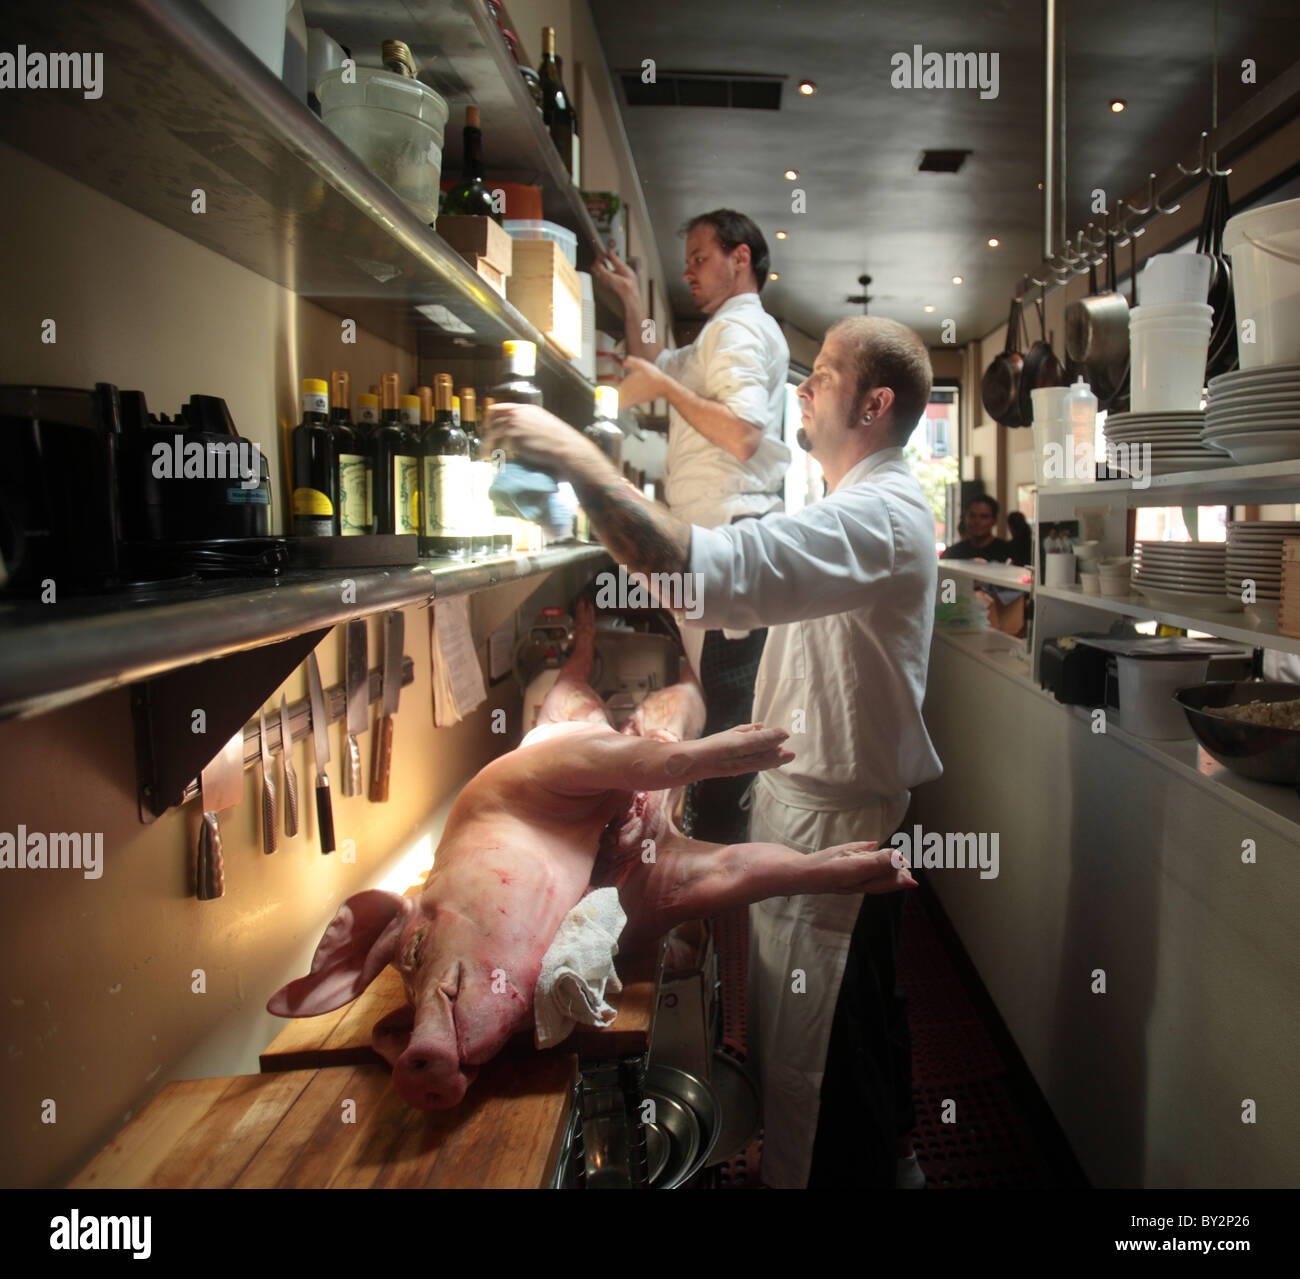 Whole Pig Butchered - Stock Image